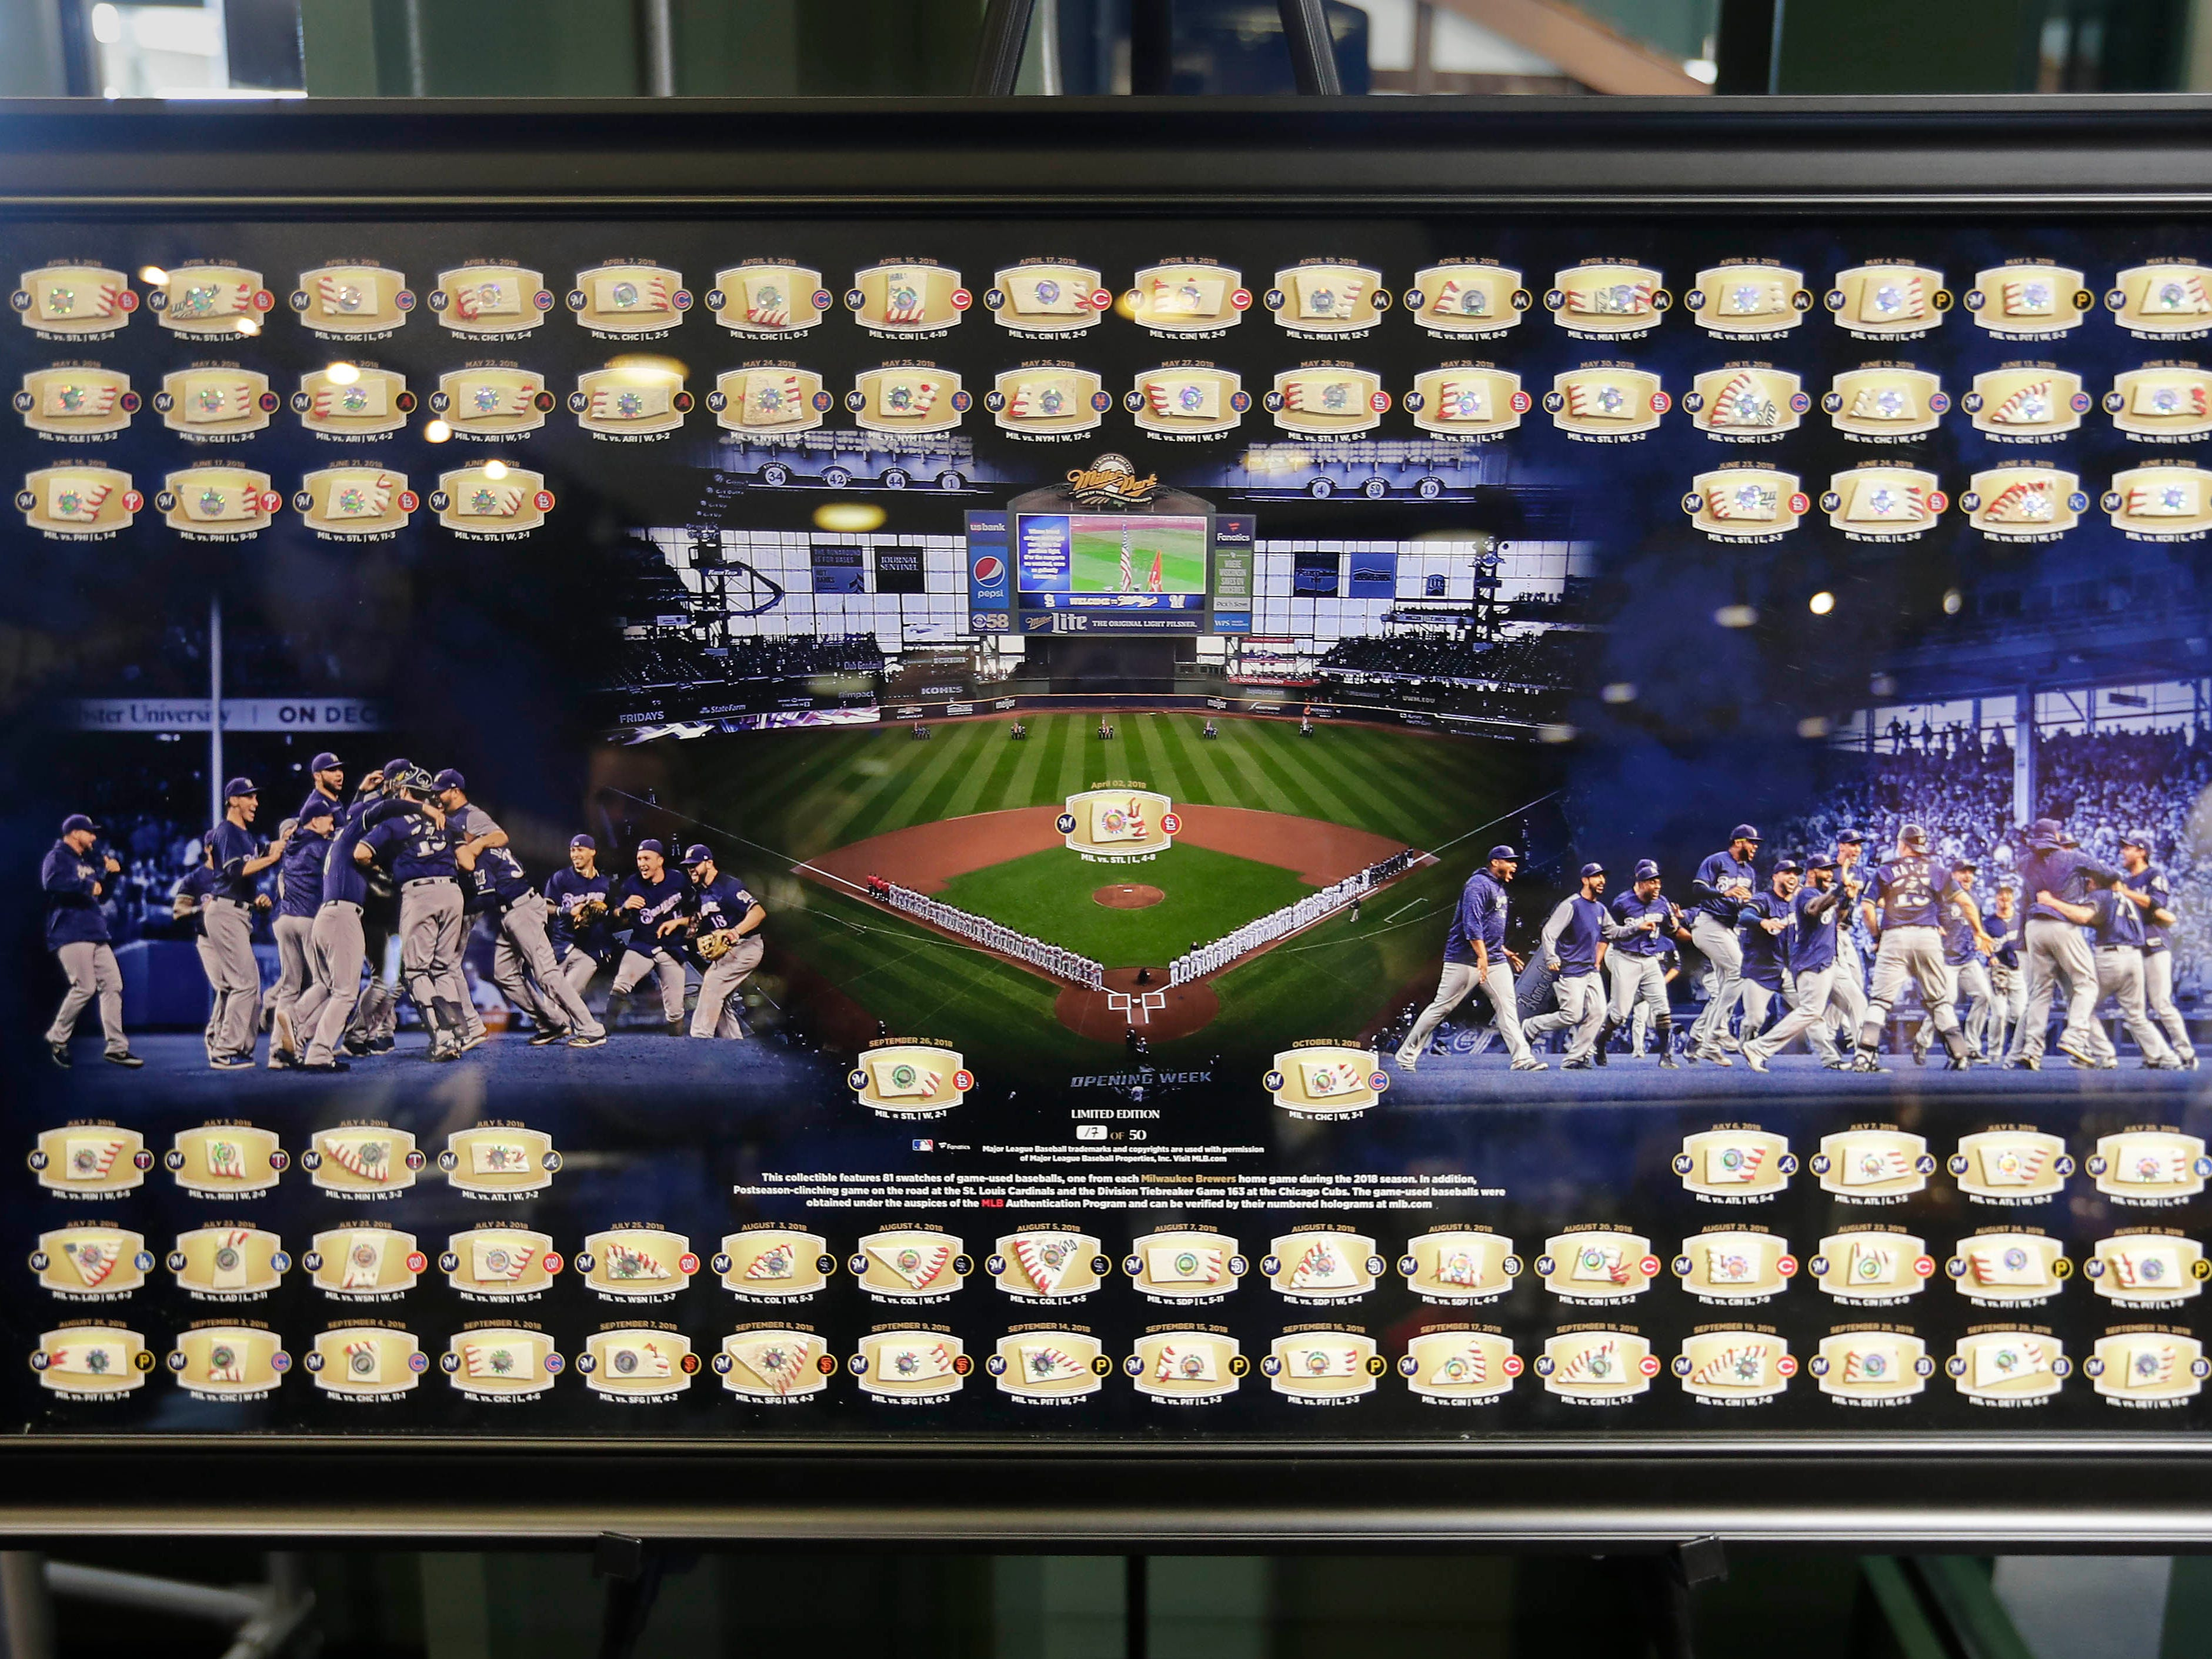 A limited edition framed souvenir includes a piece of a game ball from each home game last season. It sells for $350.